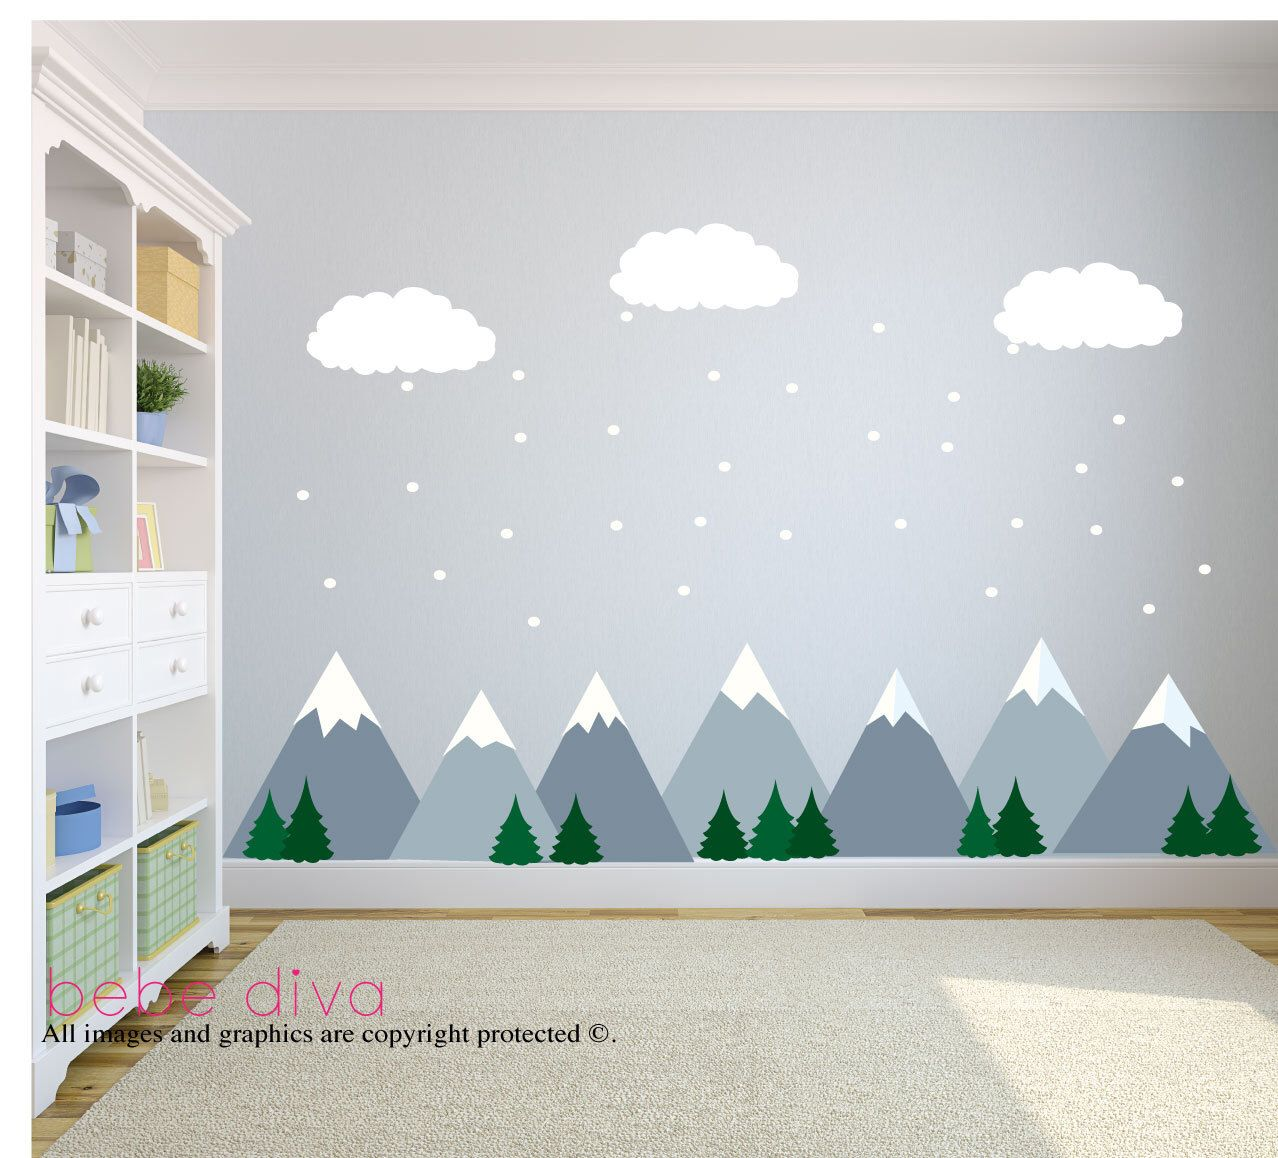 Good Mountain Wall Decals, Wall Decals Nursery, Baby Wall Decal, Kids Wall Decals ,